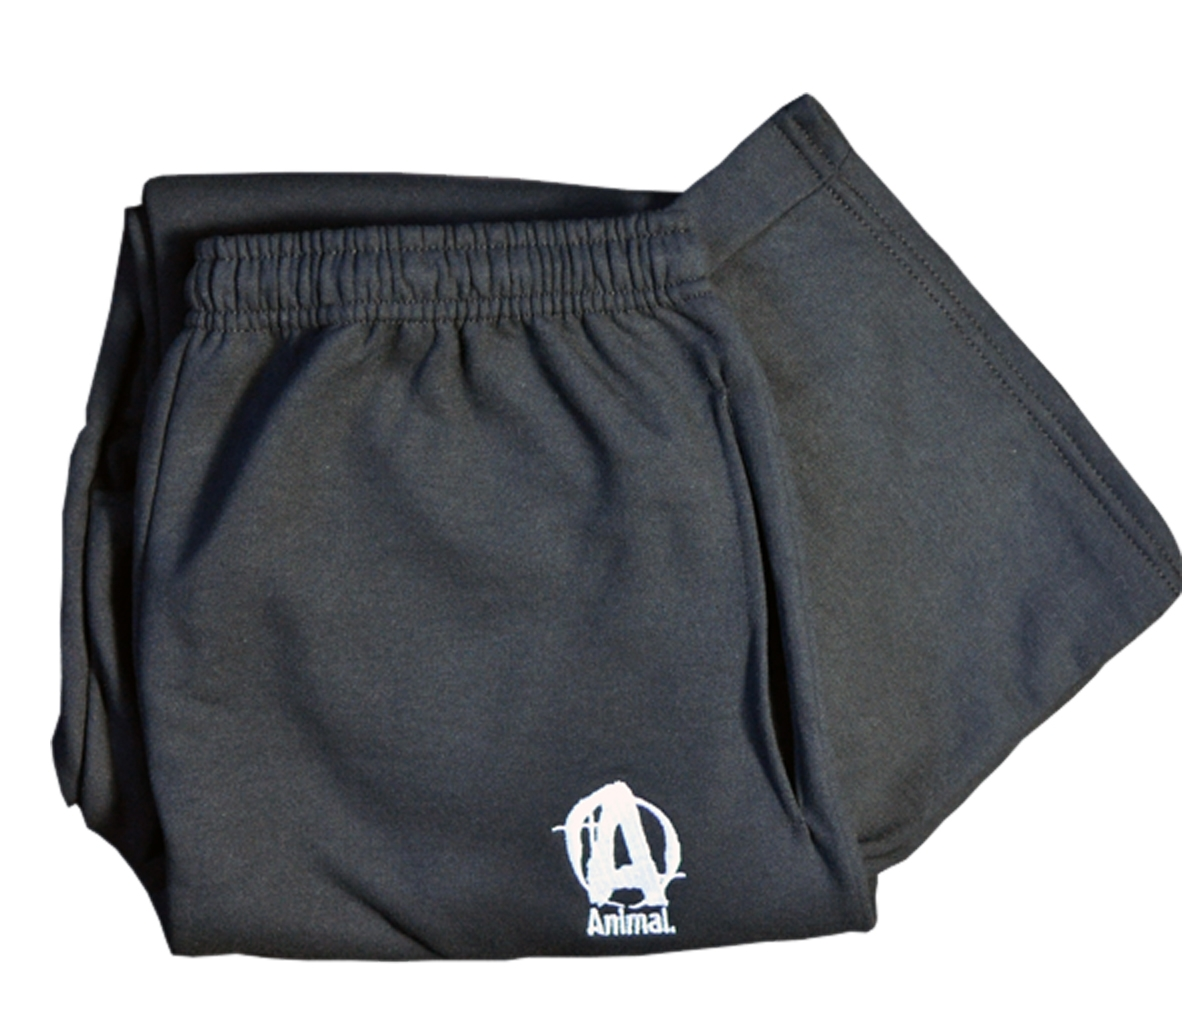 Animal Sweatpants By Universal Nutrition, Large